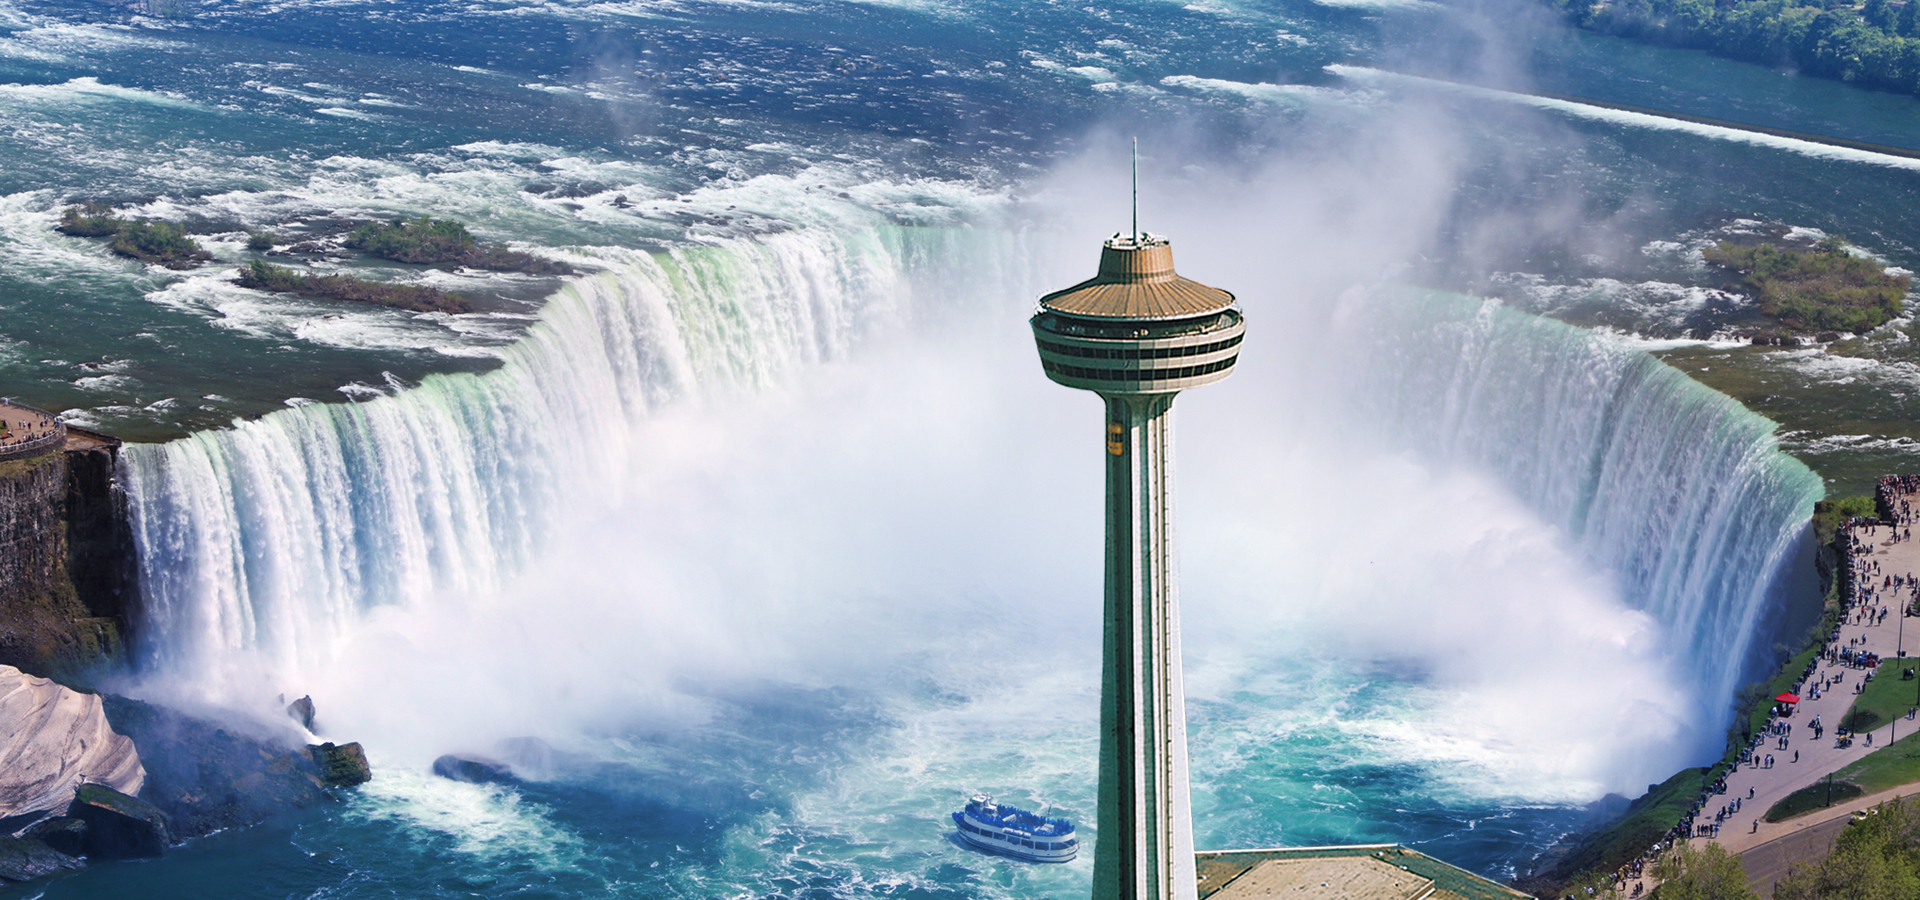 The History of Skylon Tower